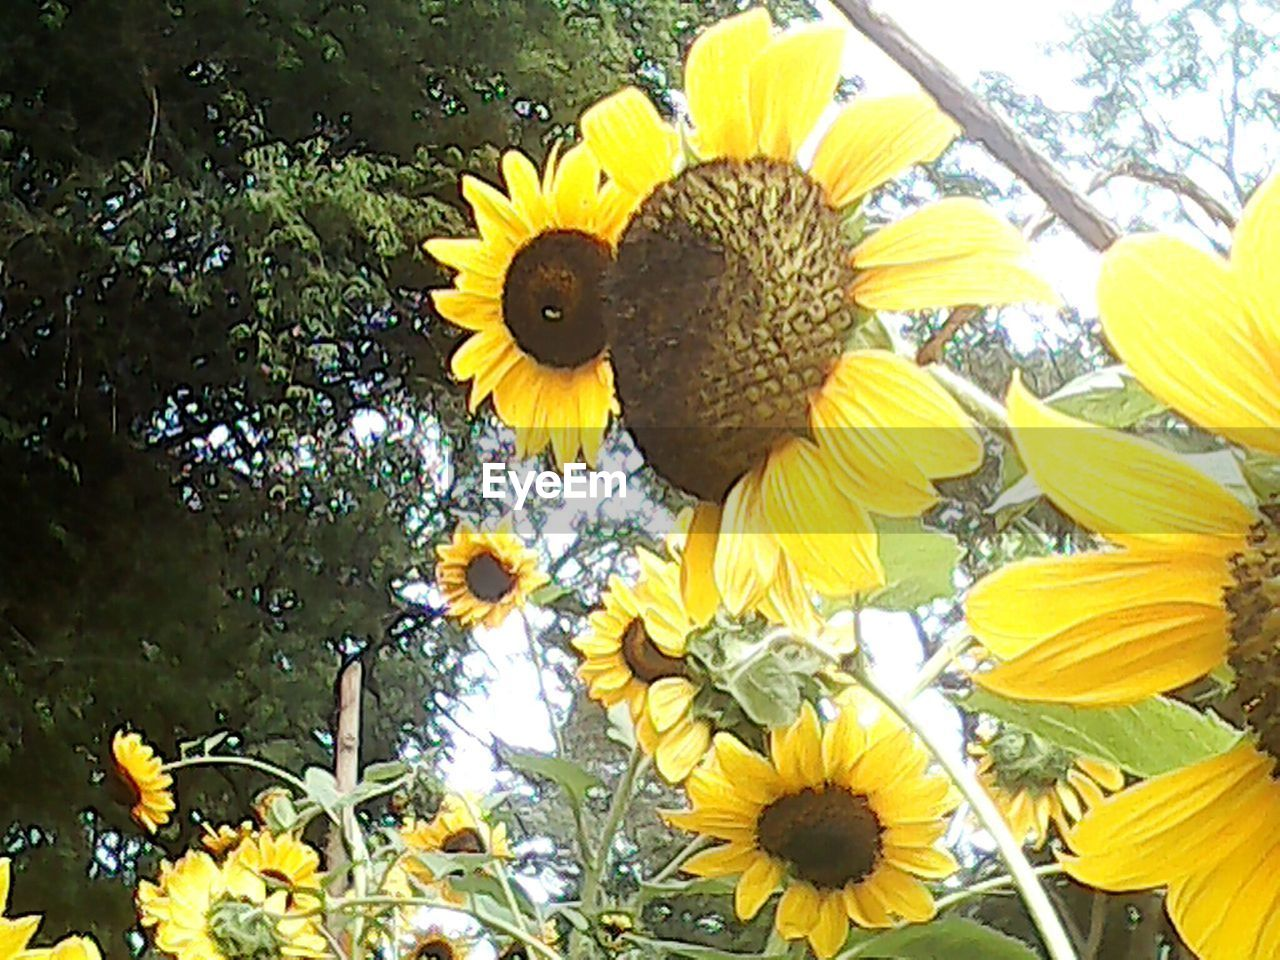 flower, yellow, petal, fragility, nature, flower head, beauty in nature, growth, freshness, sunflower, plant, outdoors, one animal, no people, day, blooming, close-up, animal themes